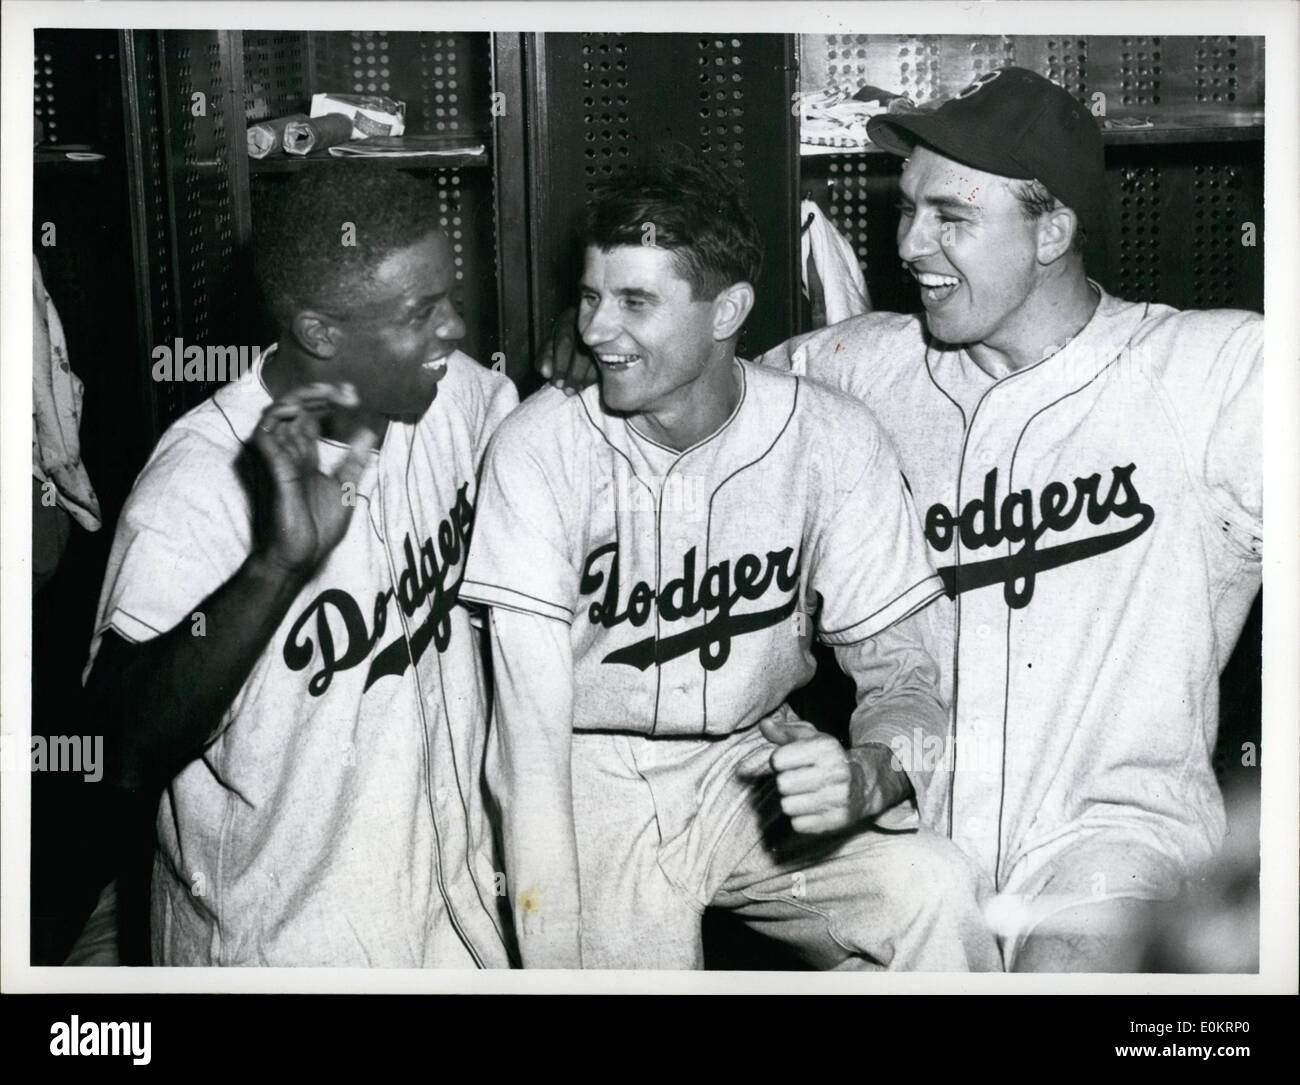 Jun. 06, 1949 - Dodger Daty At '49 Series. New York: Here are the three big guns in the Dodger victory over the Yanks today - to even the series at one all. L - R: Jackie Robinson who doubled, Preacher Roe who shut out the Yanks and Gil Hodges who dro Robinson in with the only run of the game. - Stock Image